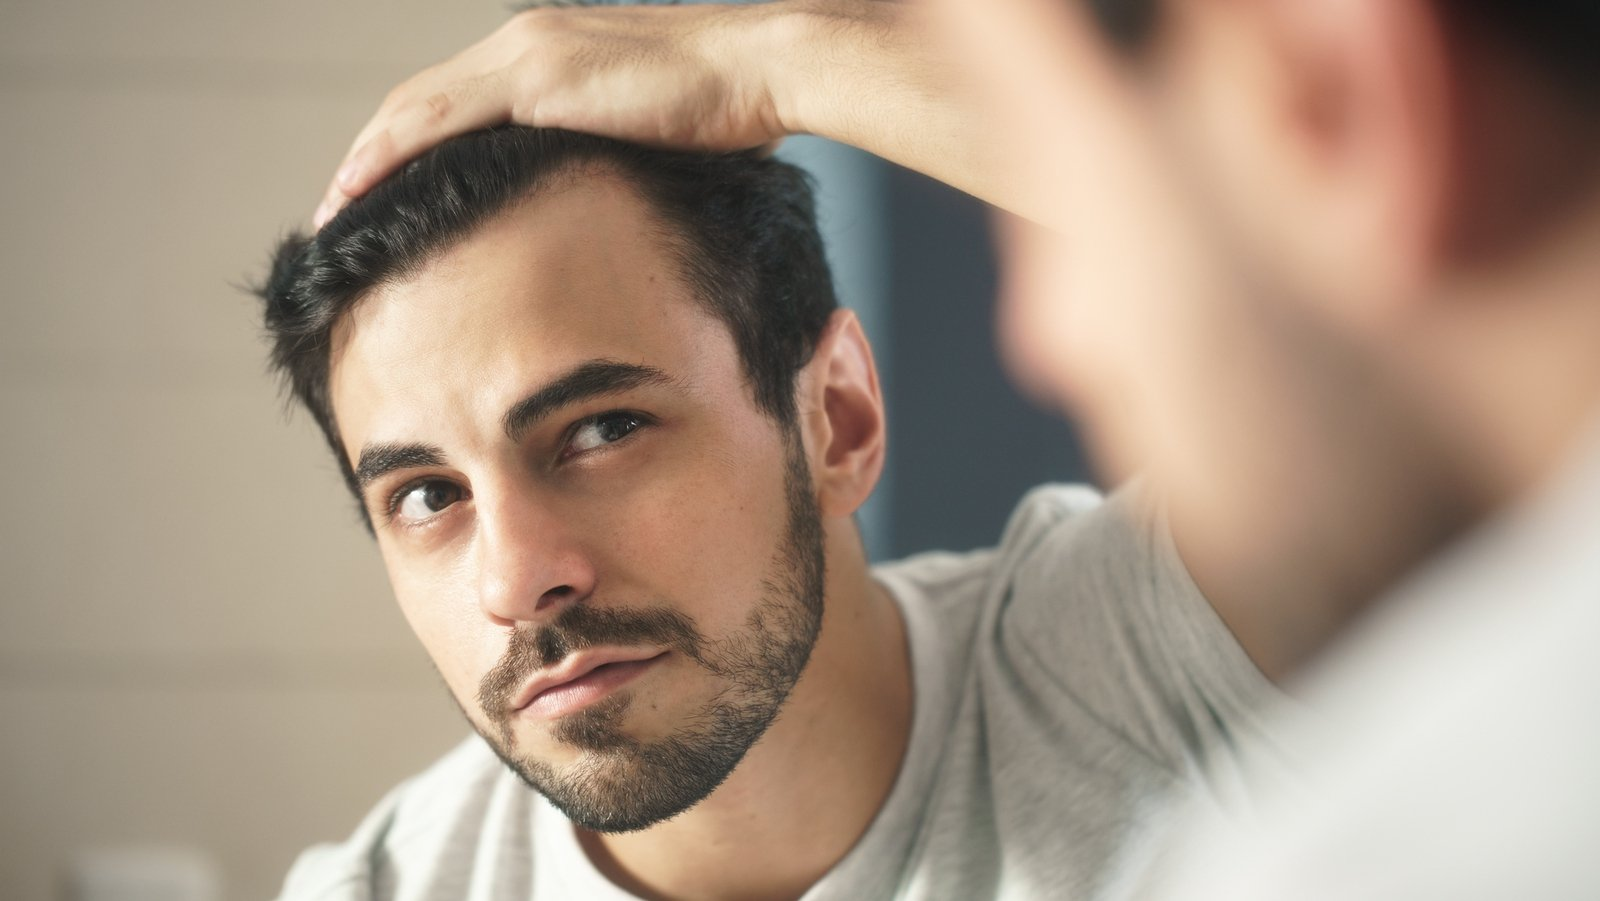 5 Reasons Why Your Hair Might Be Getting Thinner